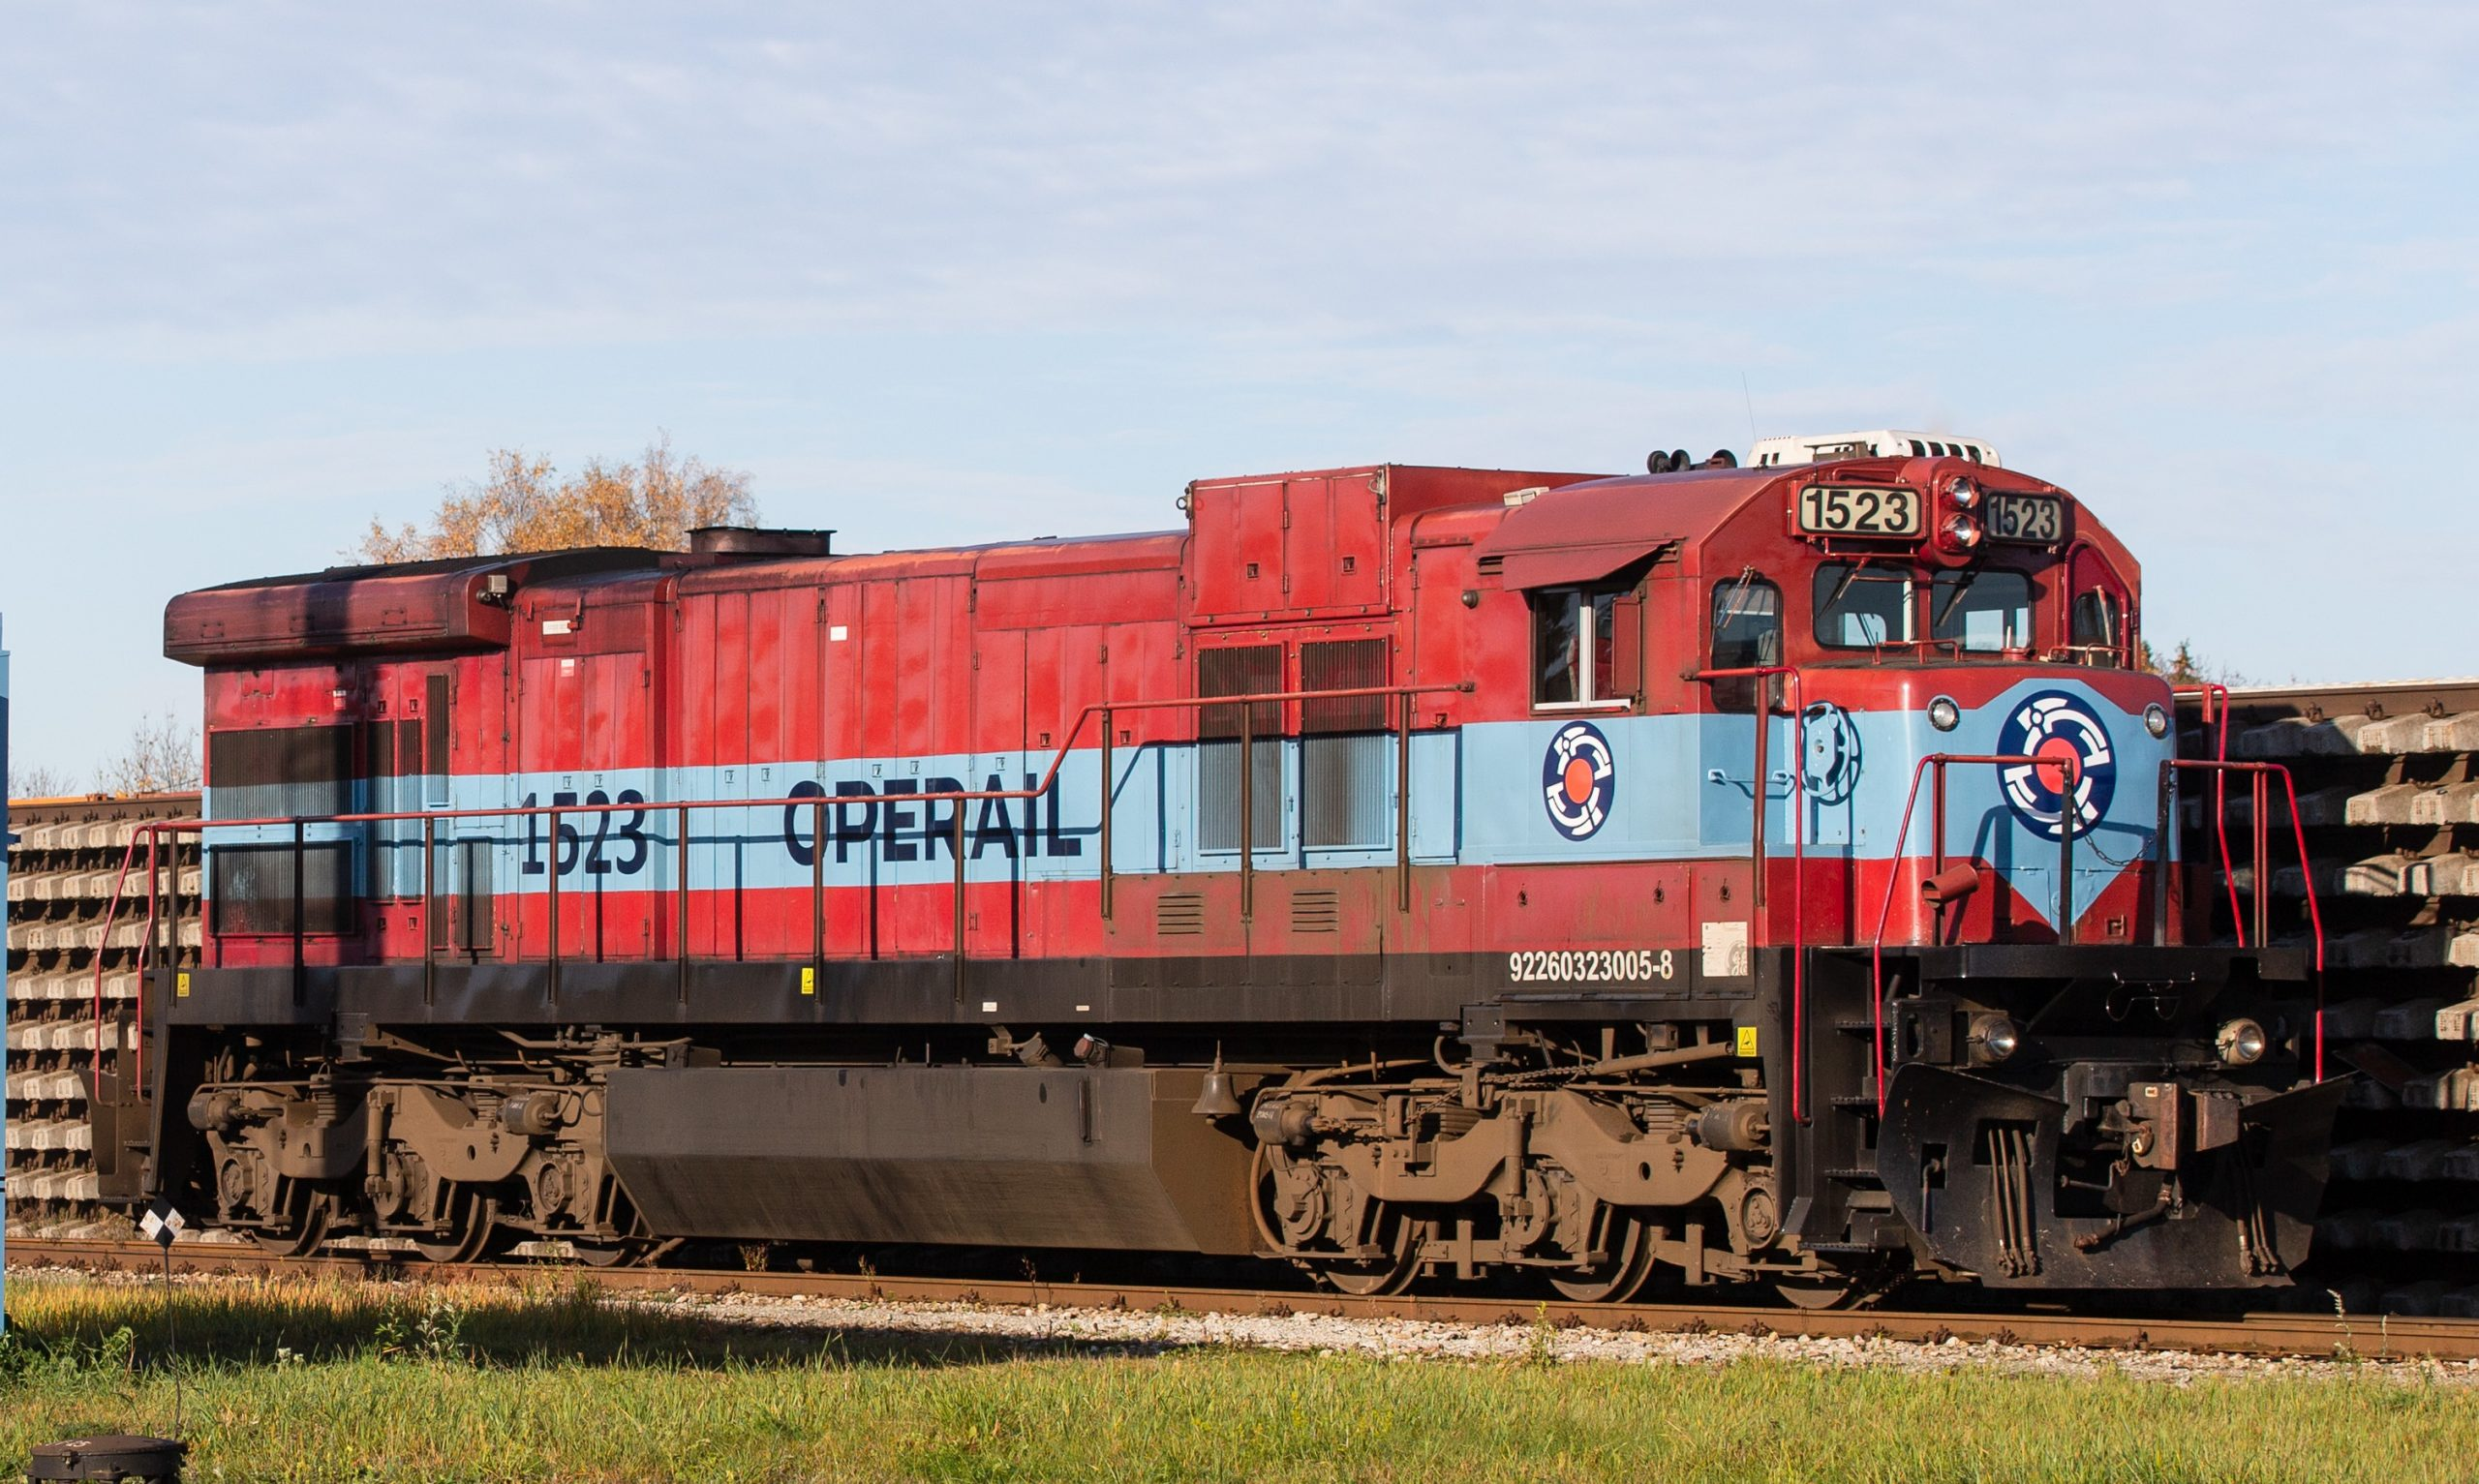 Estonia's Operail to put its first LNG locomotive into use this year